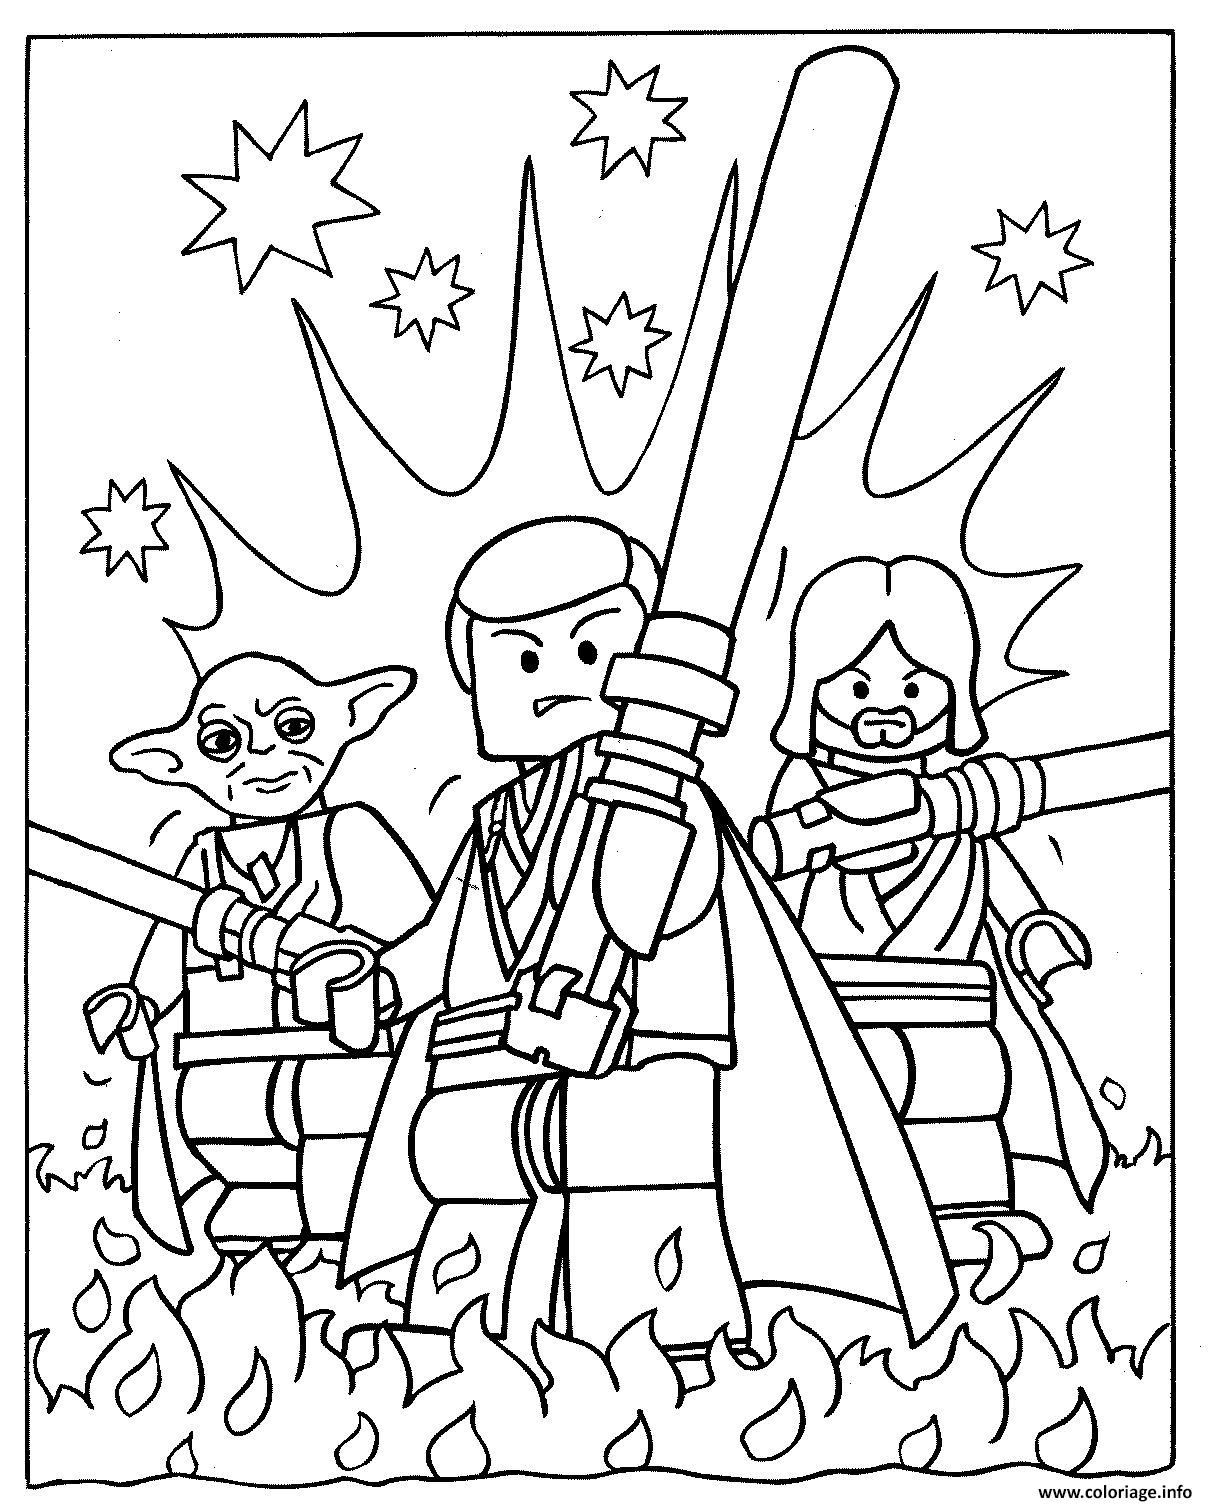 Coloriage Lego Star Wars 3 Dessin Idée Coloriage Lego Star Wars 3